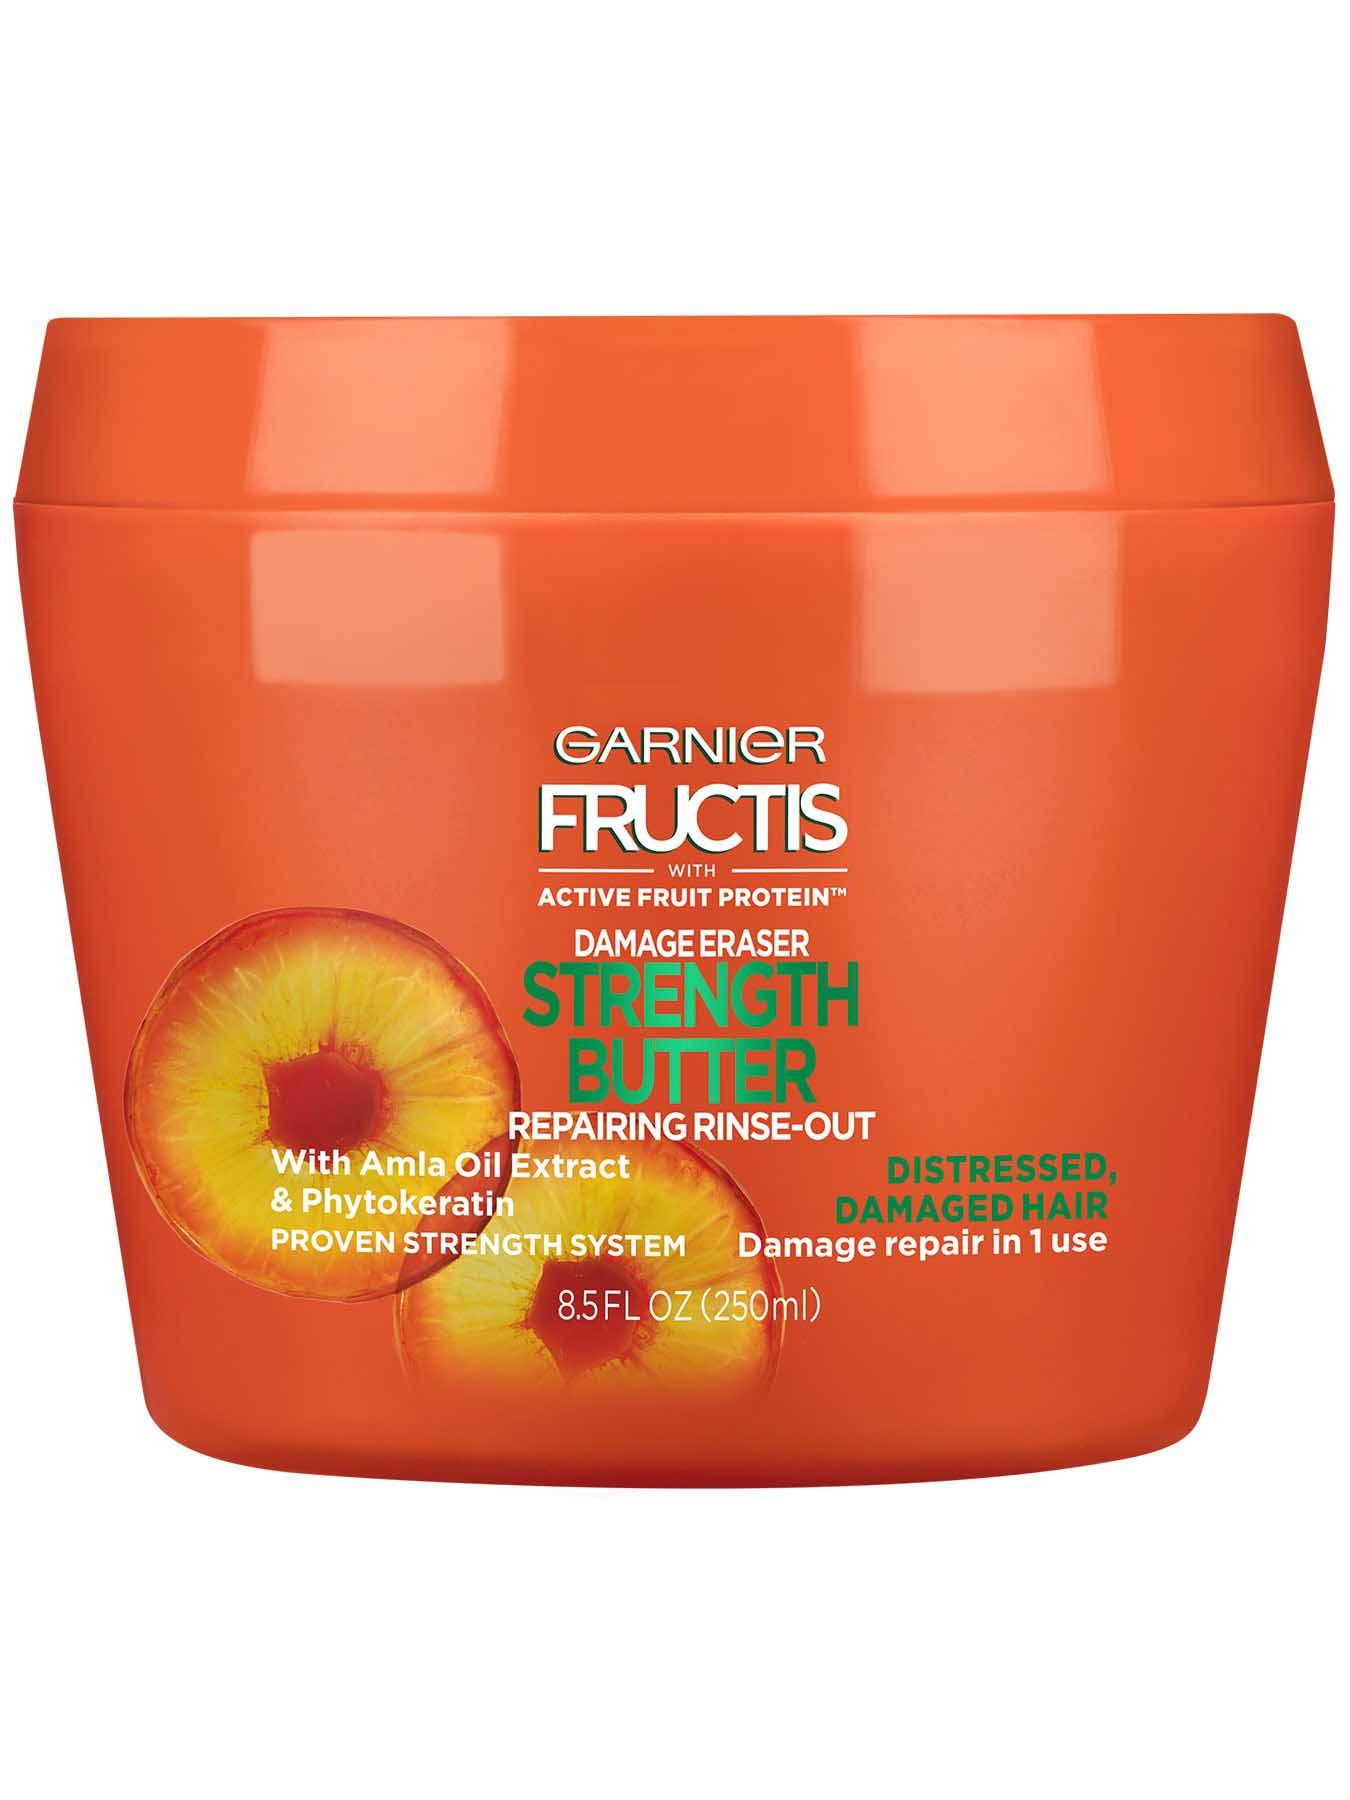 Garnier Fructis Damage Eraser Strength Butter Reconstructing Rinse Out Front Of Bottle